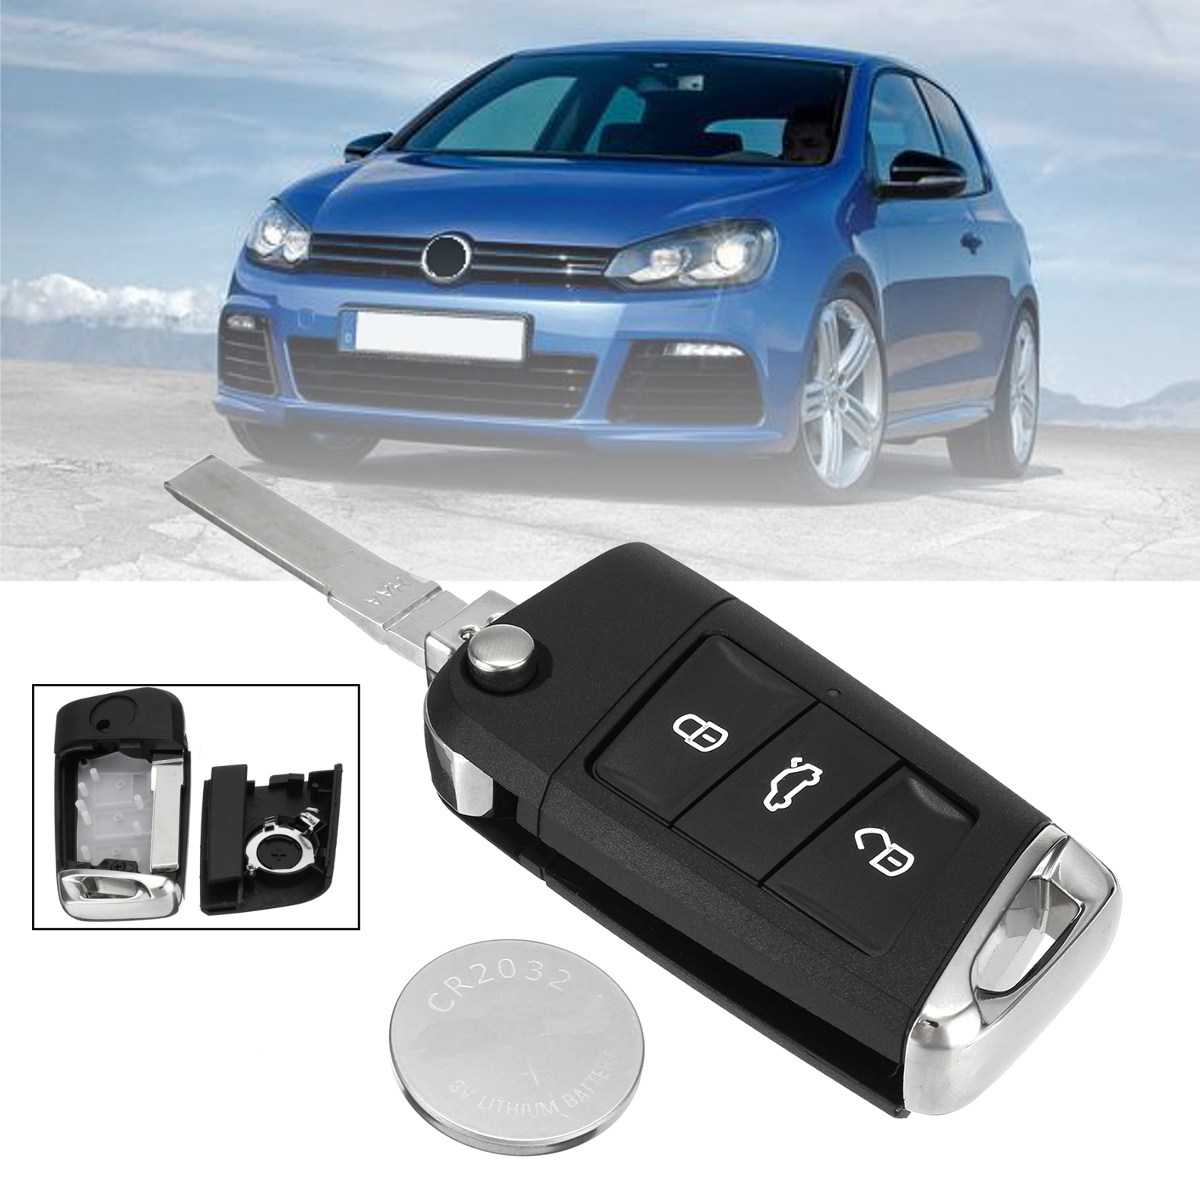 3 Buttons CR2032 HAA Blade <font><b>Remote</b></font> Flip <font><b>Key</b></font> Fob Case Shell Cover W/ Battery for VW Volkswagen <font><b>Golf</b></font> <font><b>7</b></font> MK7 2002 2003 2004 2005 2006 image